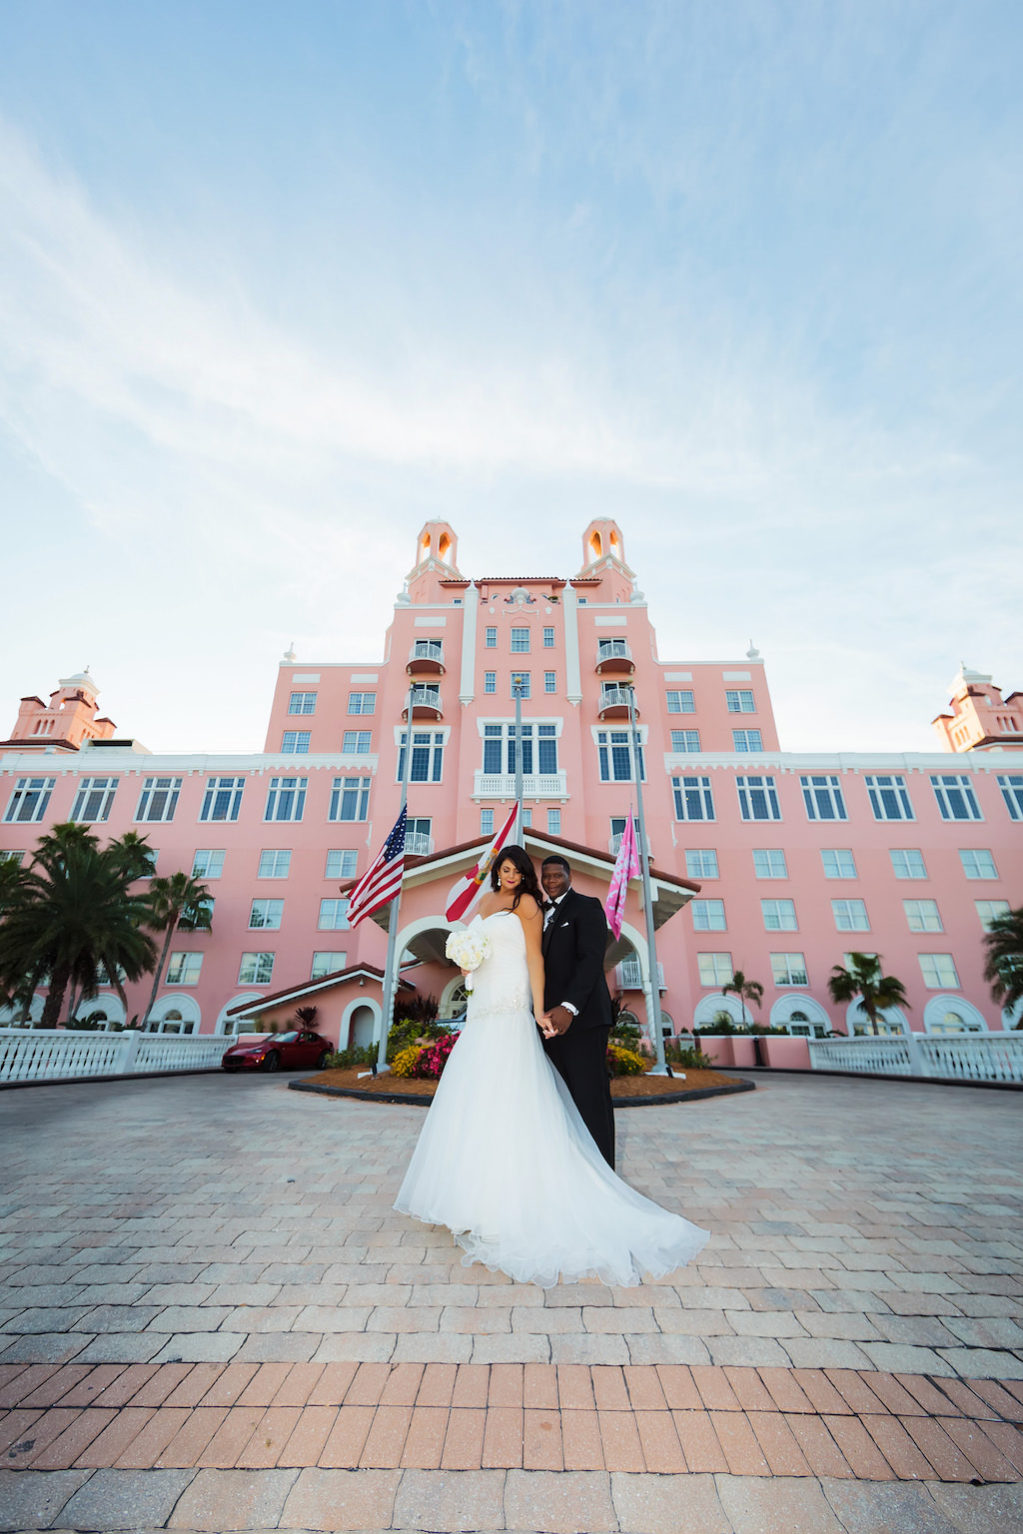 Tampa Bay Bride and Groom Portrait | The Pink Palace, Historic Beachfront Florida Wedding Venue The Don CeSar in St. Pete Beach